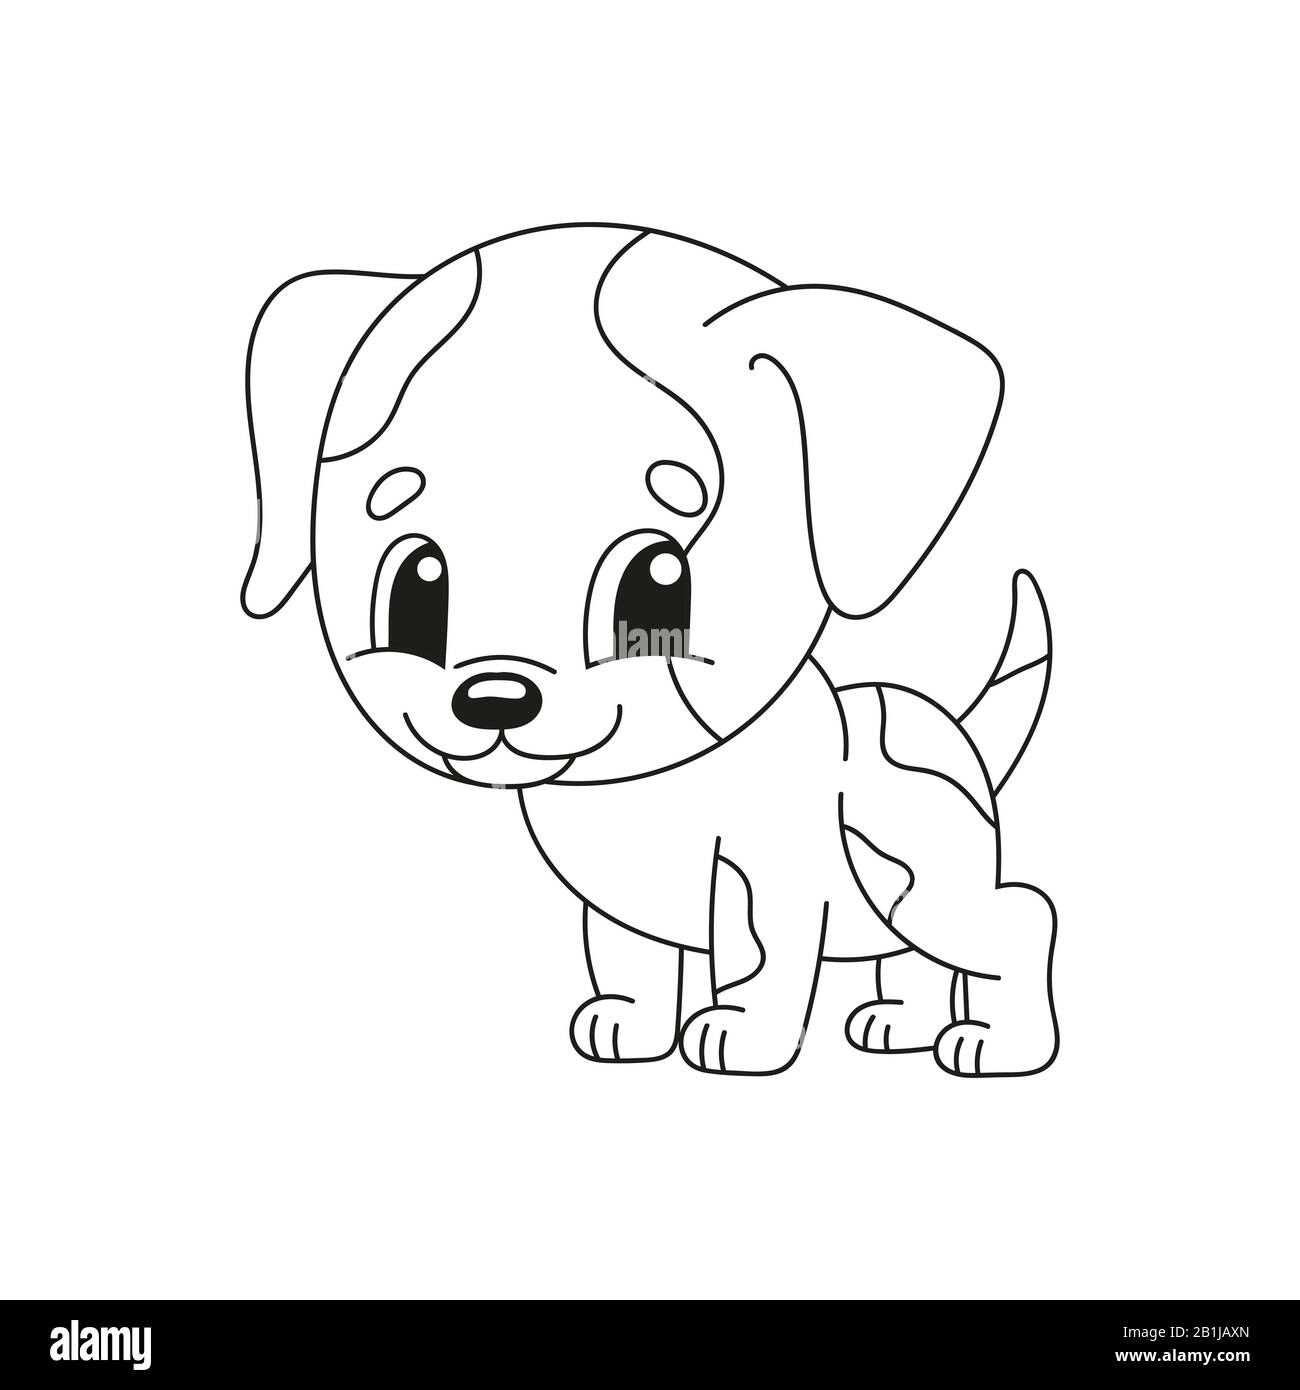 Cute Baby Dog Coloring Pages High Resolution Stock Photography And Images Alamy